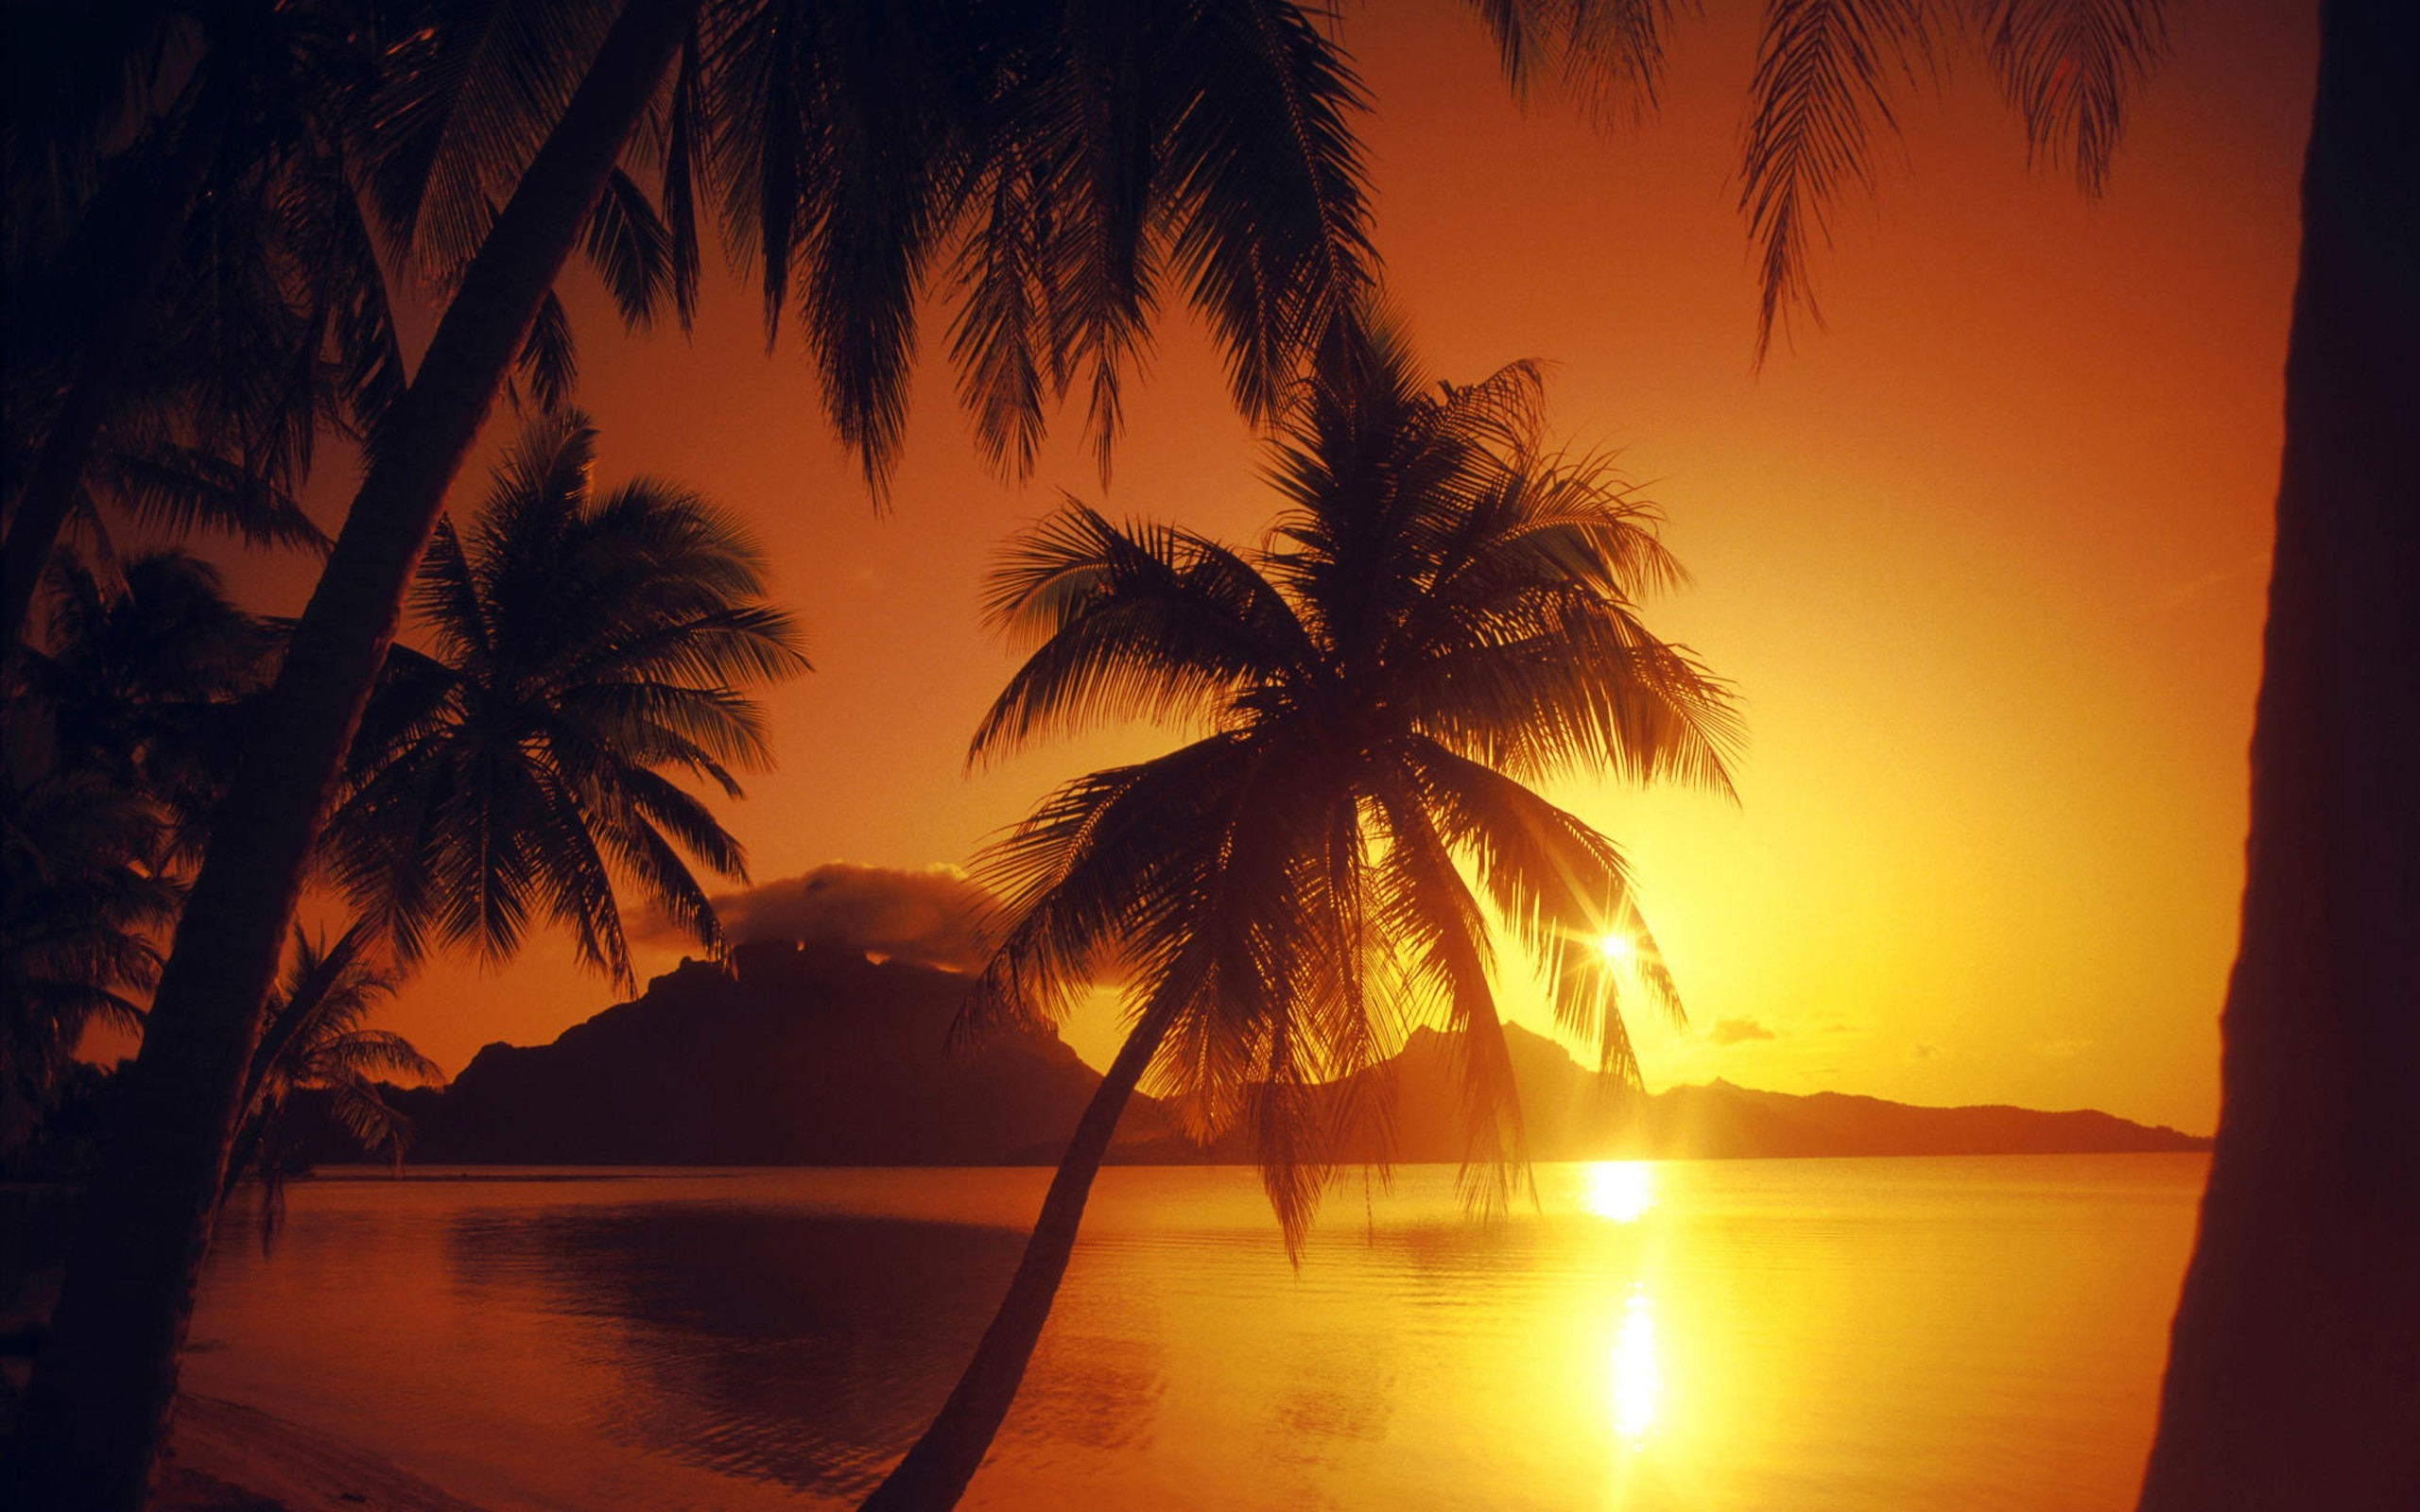 Beautiful Wallpaper Laptop Sunset - beaches-landscapes-nature-palm-trees-sunset-2560x1600-wallpaper  Best Photo Reference_2939.jpg